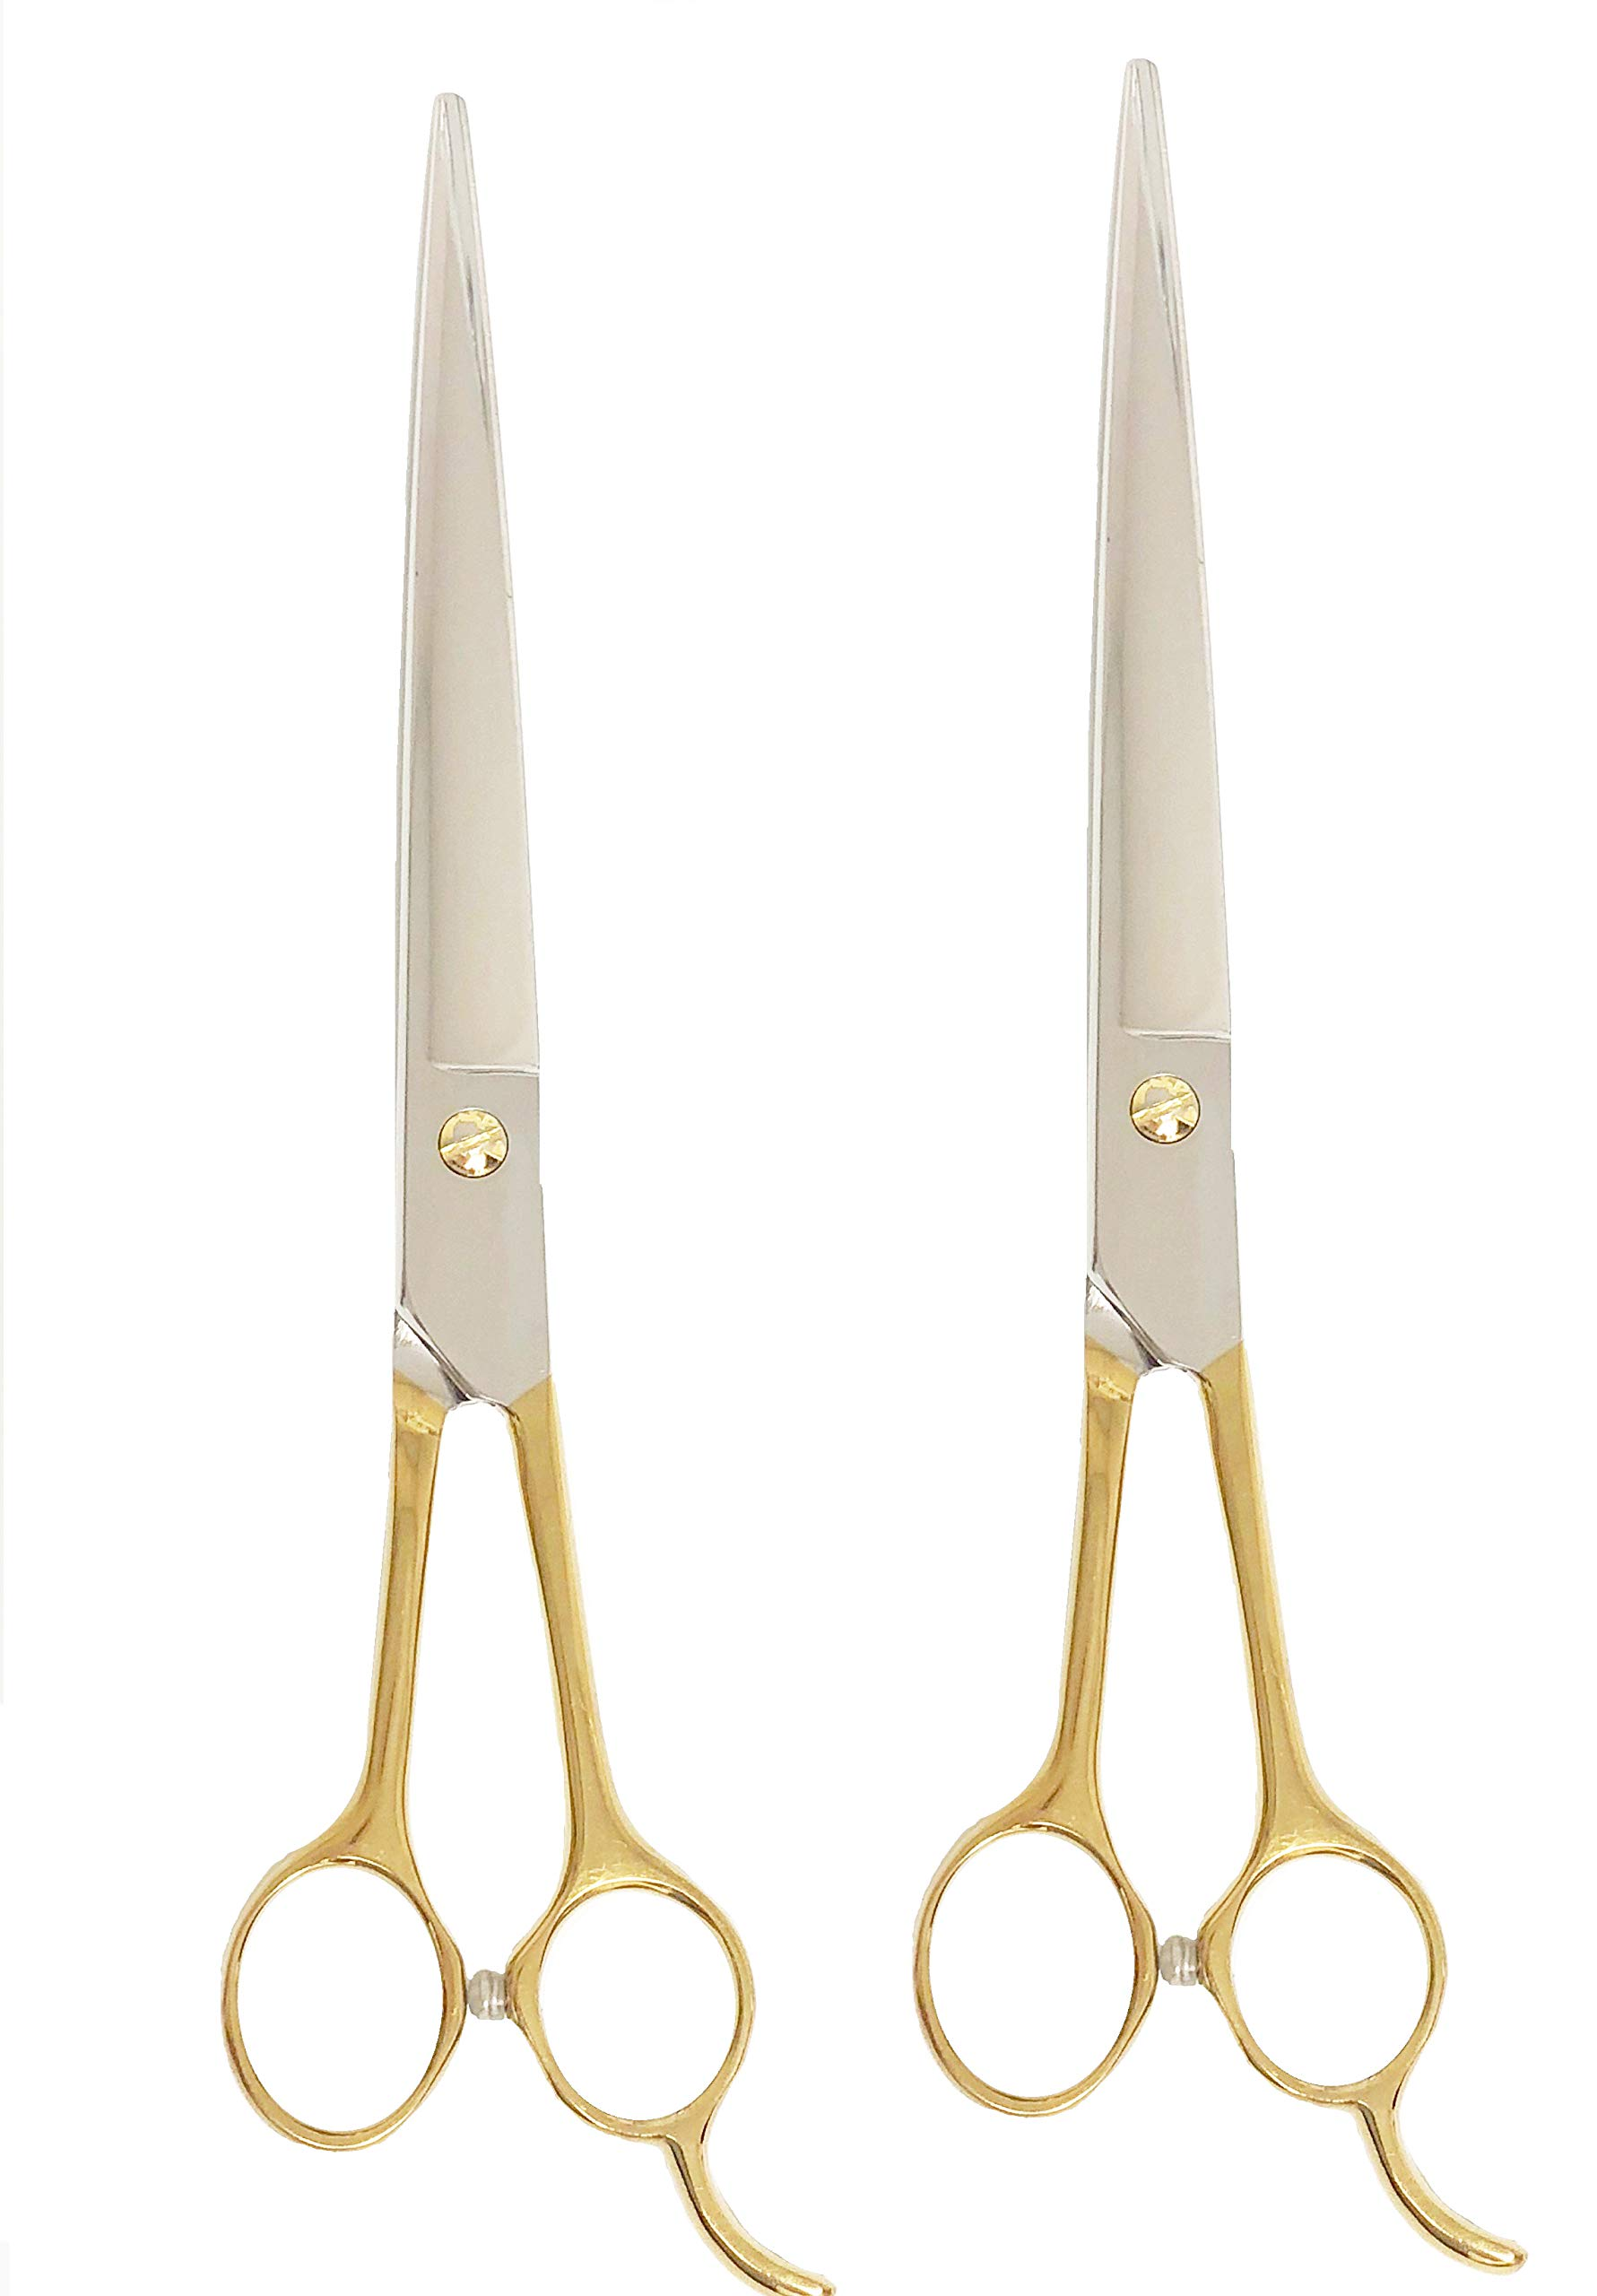 ShearsDirect G-80SET Set Serrated Blade & Gold Handle, 8.0'' by ShearsDirect